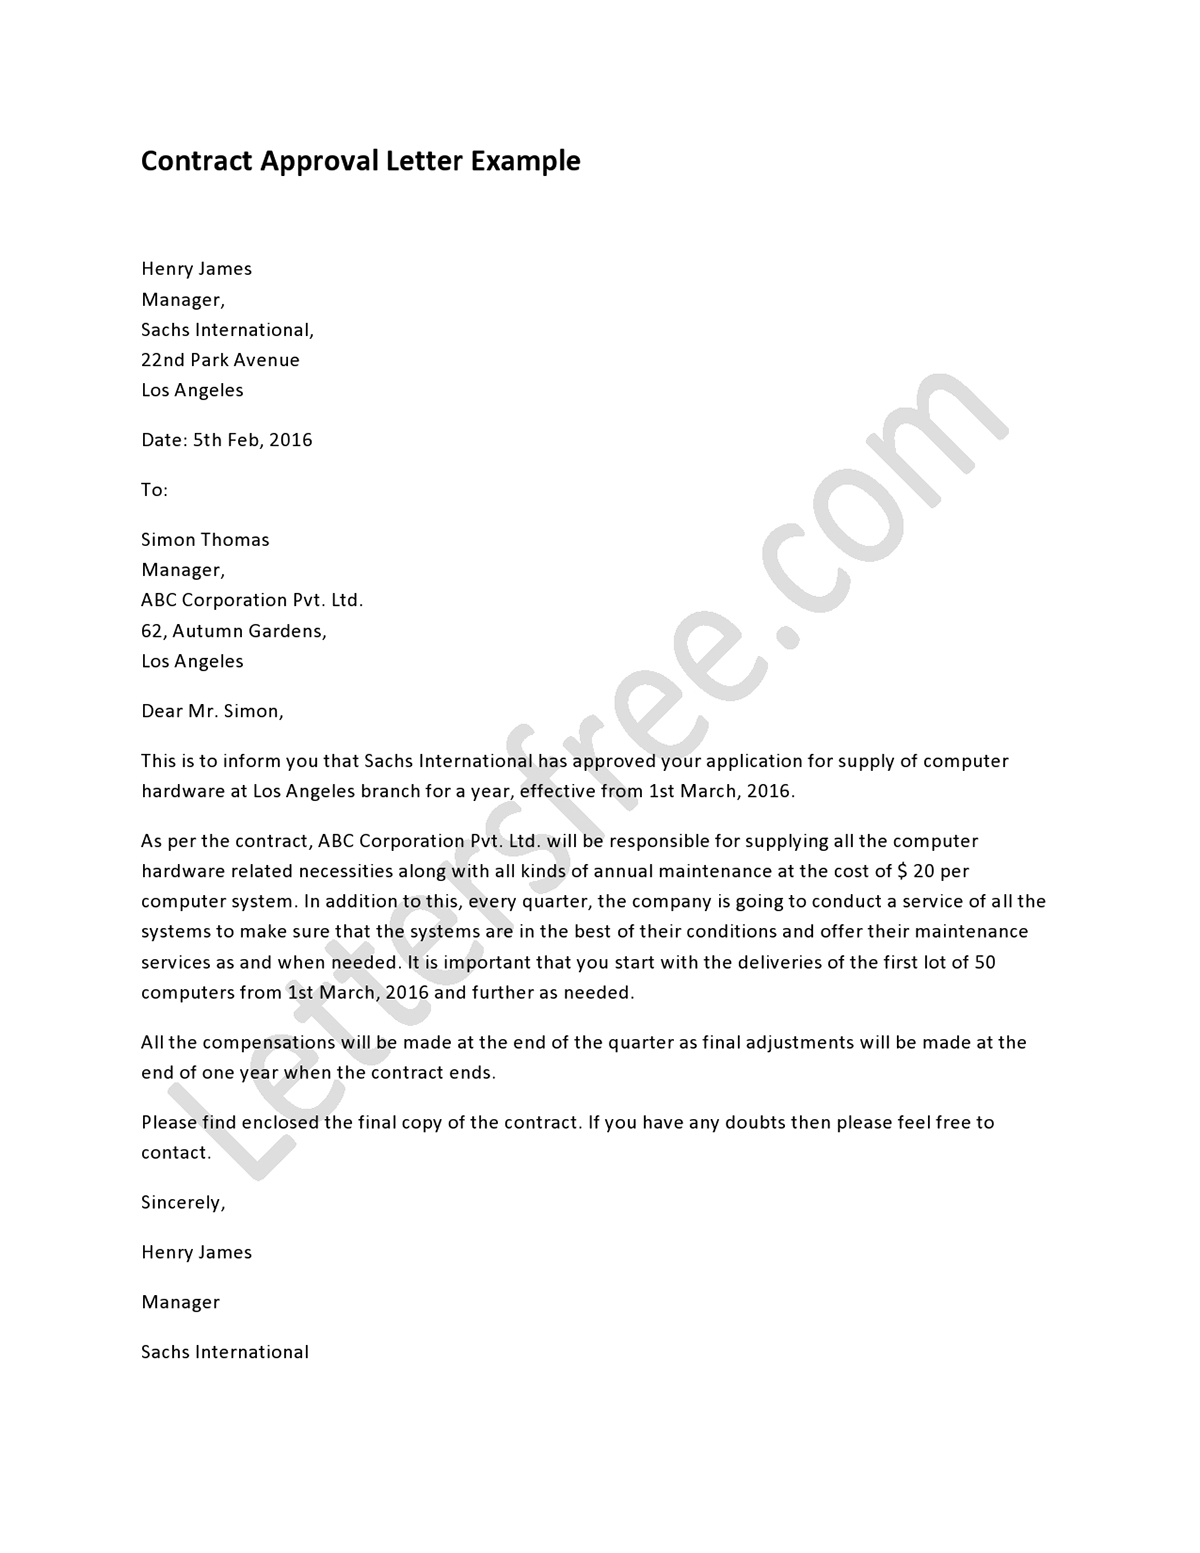 Sample Approval Letter Format Pictures To Pin On Pinterest